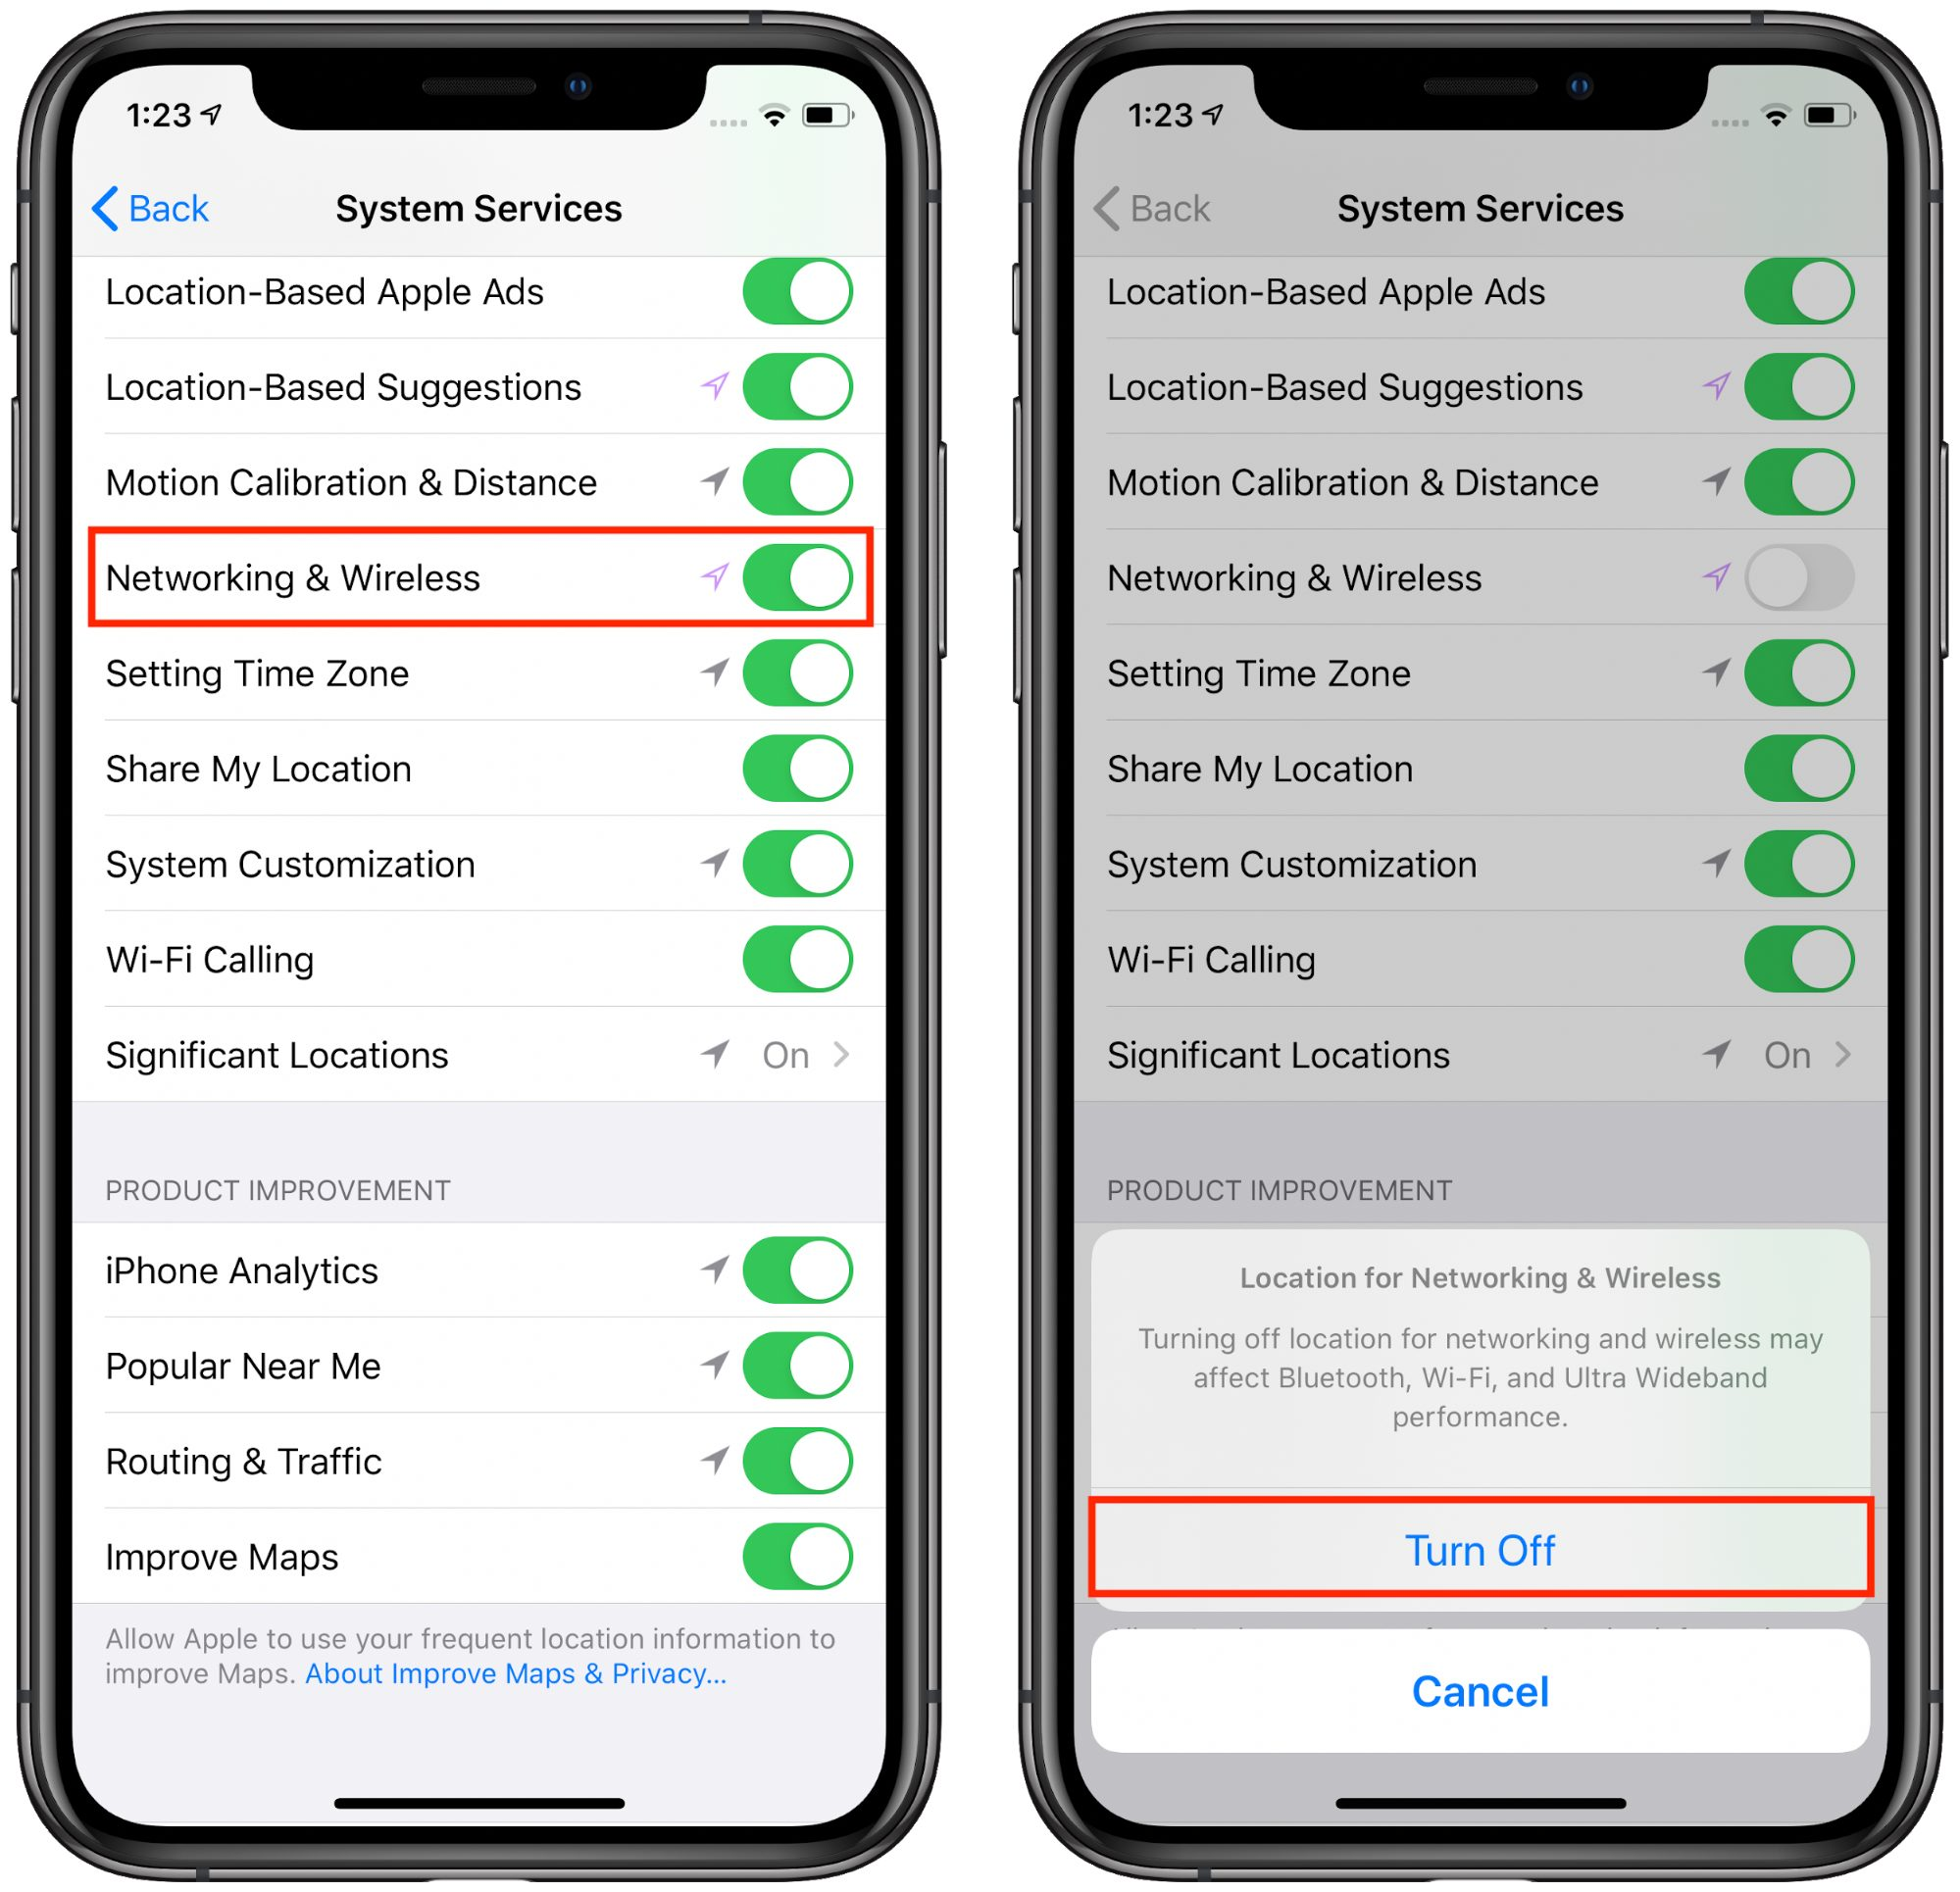 The new Networking & Wireless setting